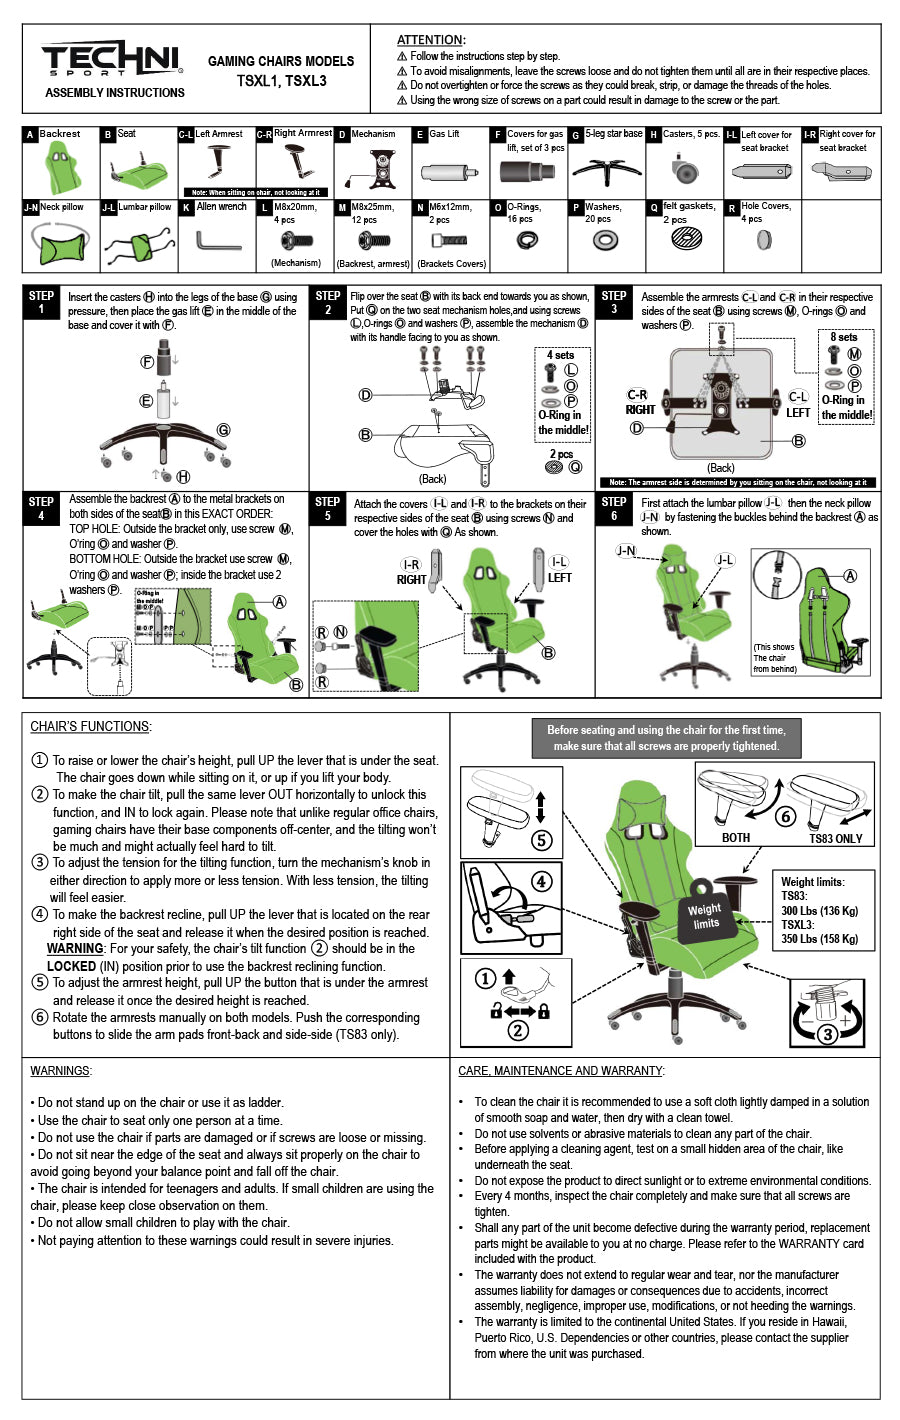 Picture of: Assembly Instructions Techni Sport